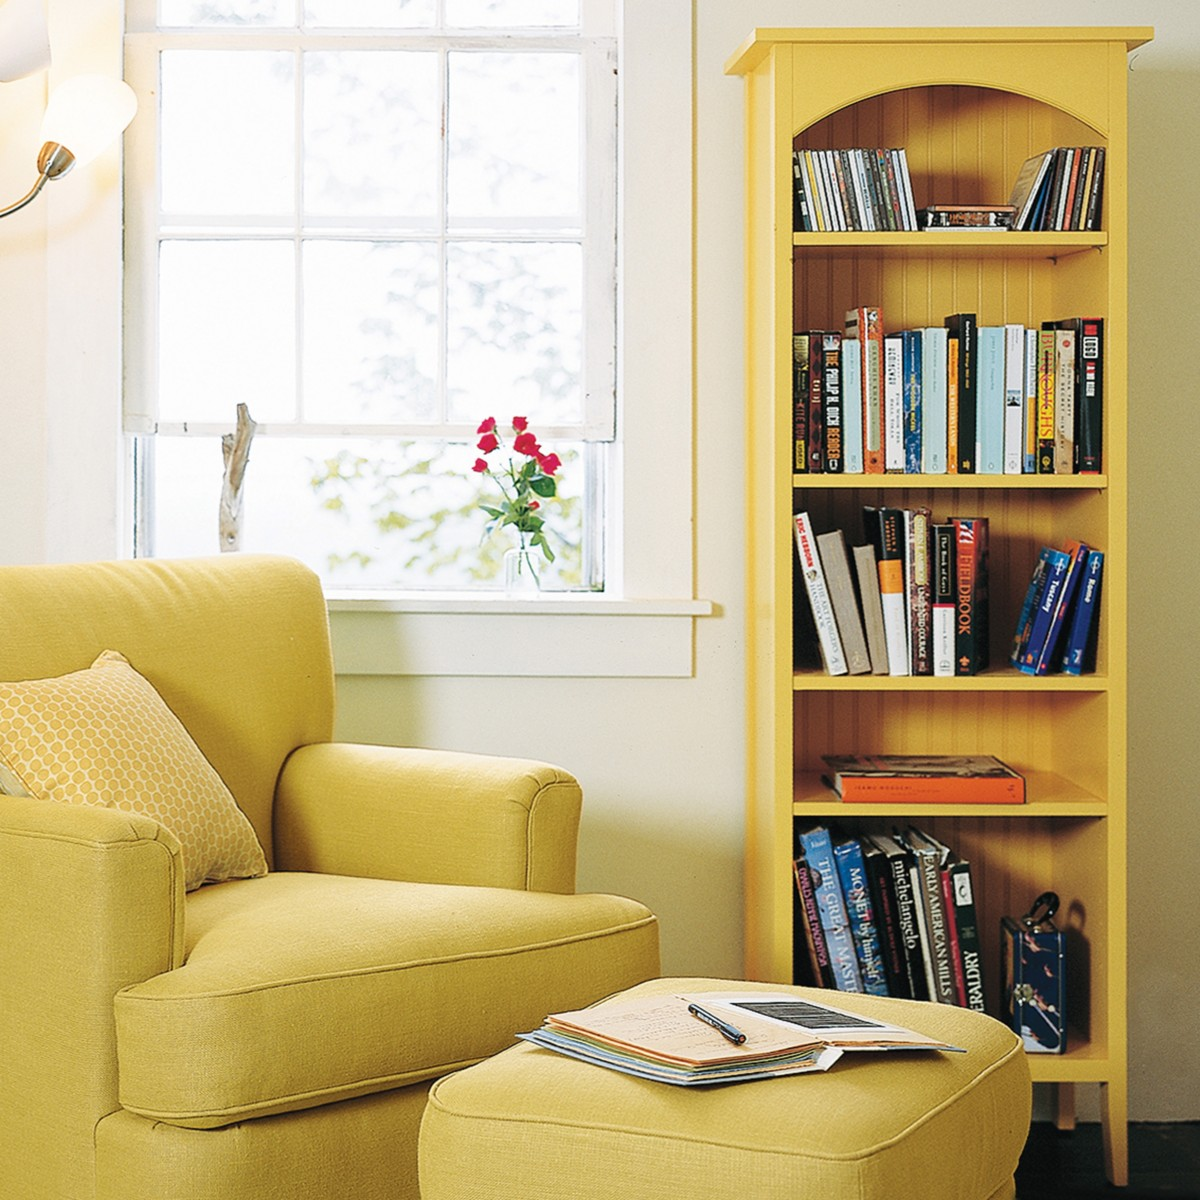 doors wood walmart looking design picture furniture livingroom stands with for good literarywondrous bookshelf room girls drawers online library yellow and speaker bookcase ideas wall target home singapore